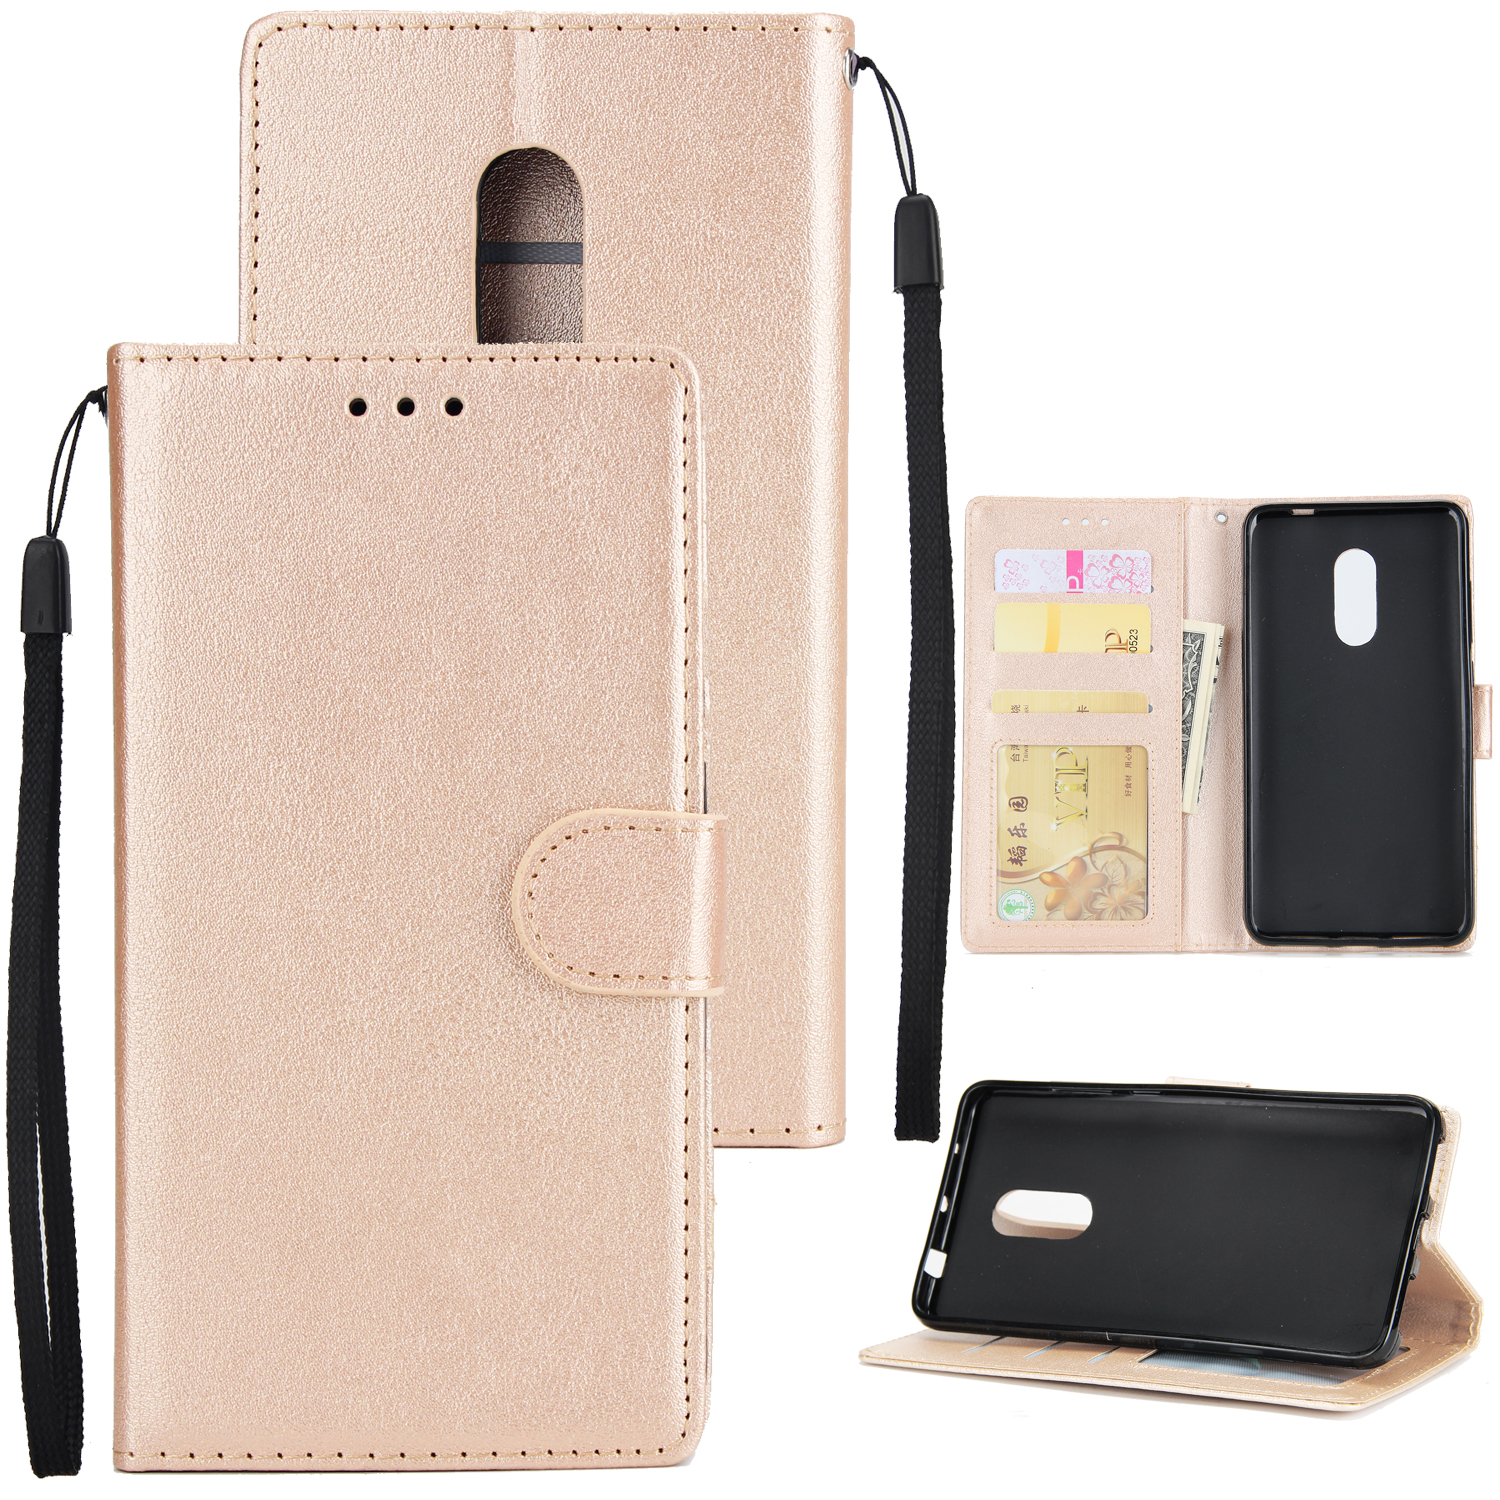 Ultra Slim PU Full Protective Cover Non-slip Shockproof Cell Phone Case with Card Slot for Xiaomi Redmi note 4 Golden